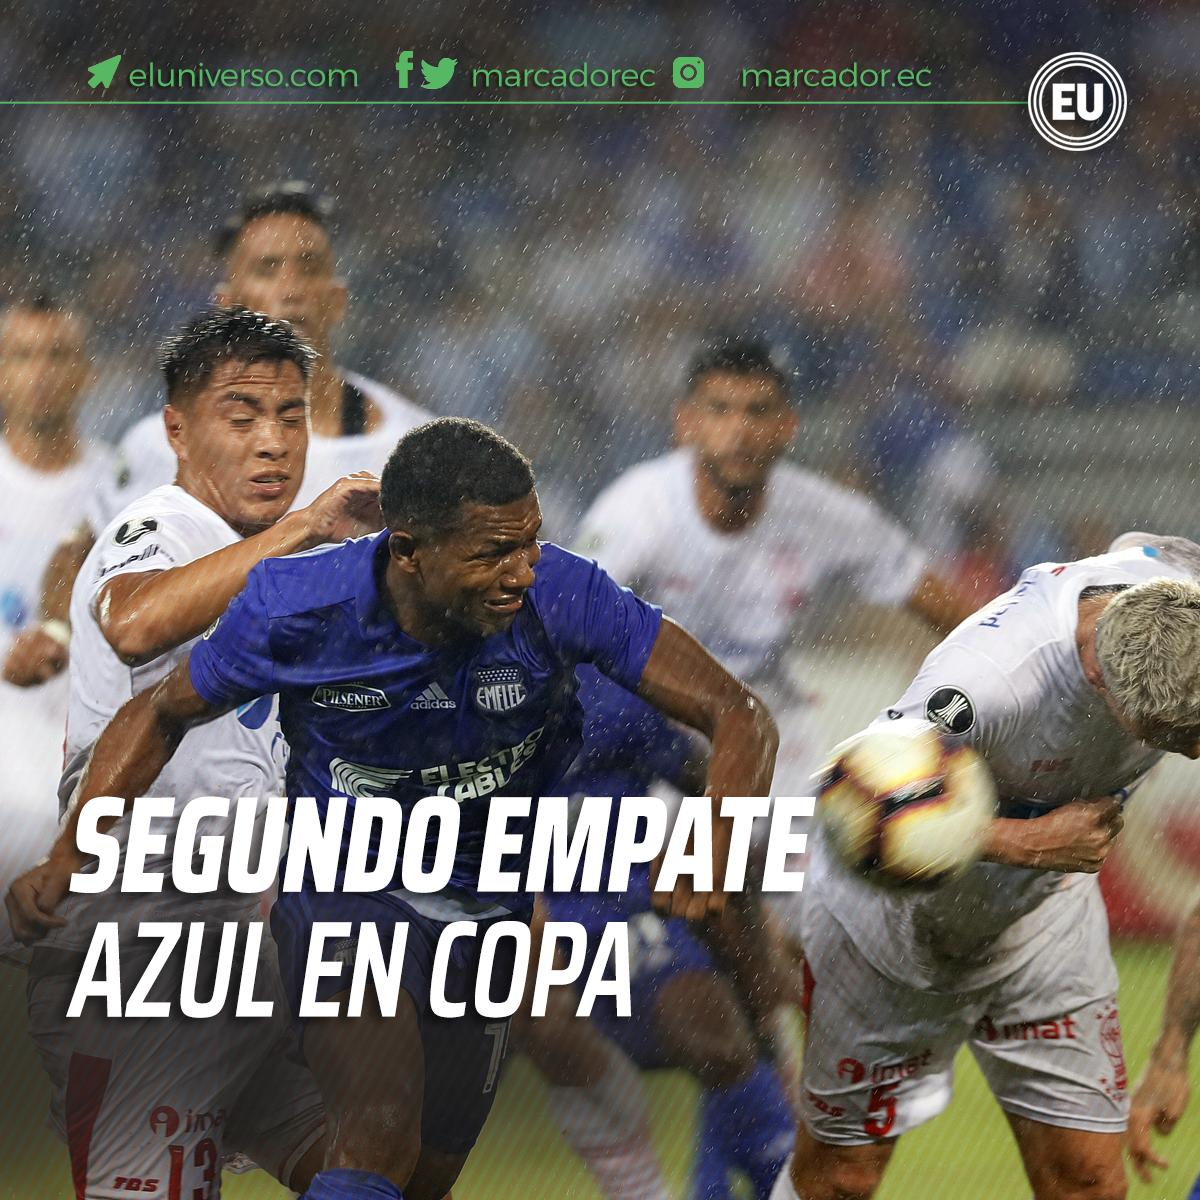 Sala de Prensa Ecuador's photo on Emelec